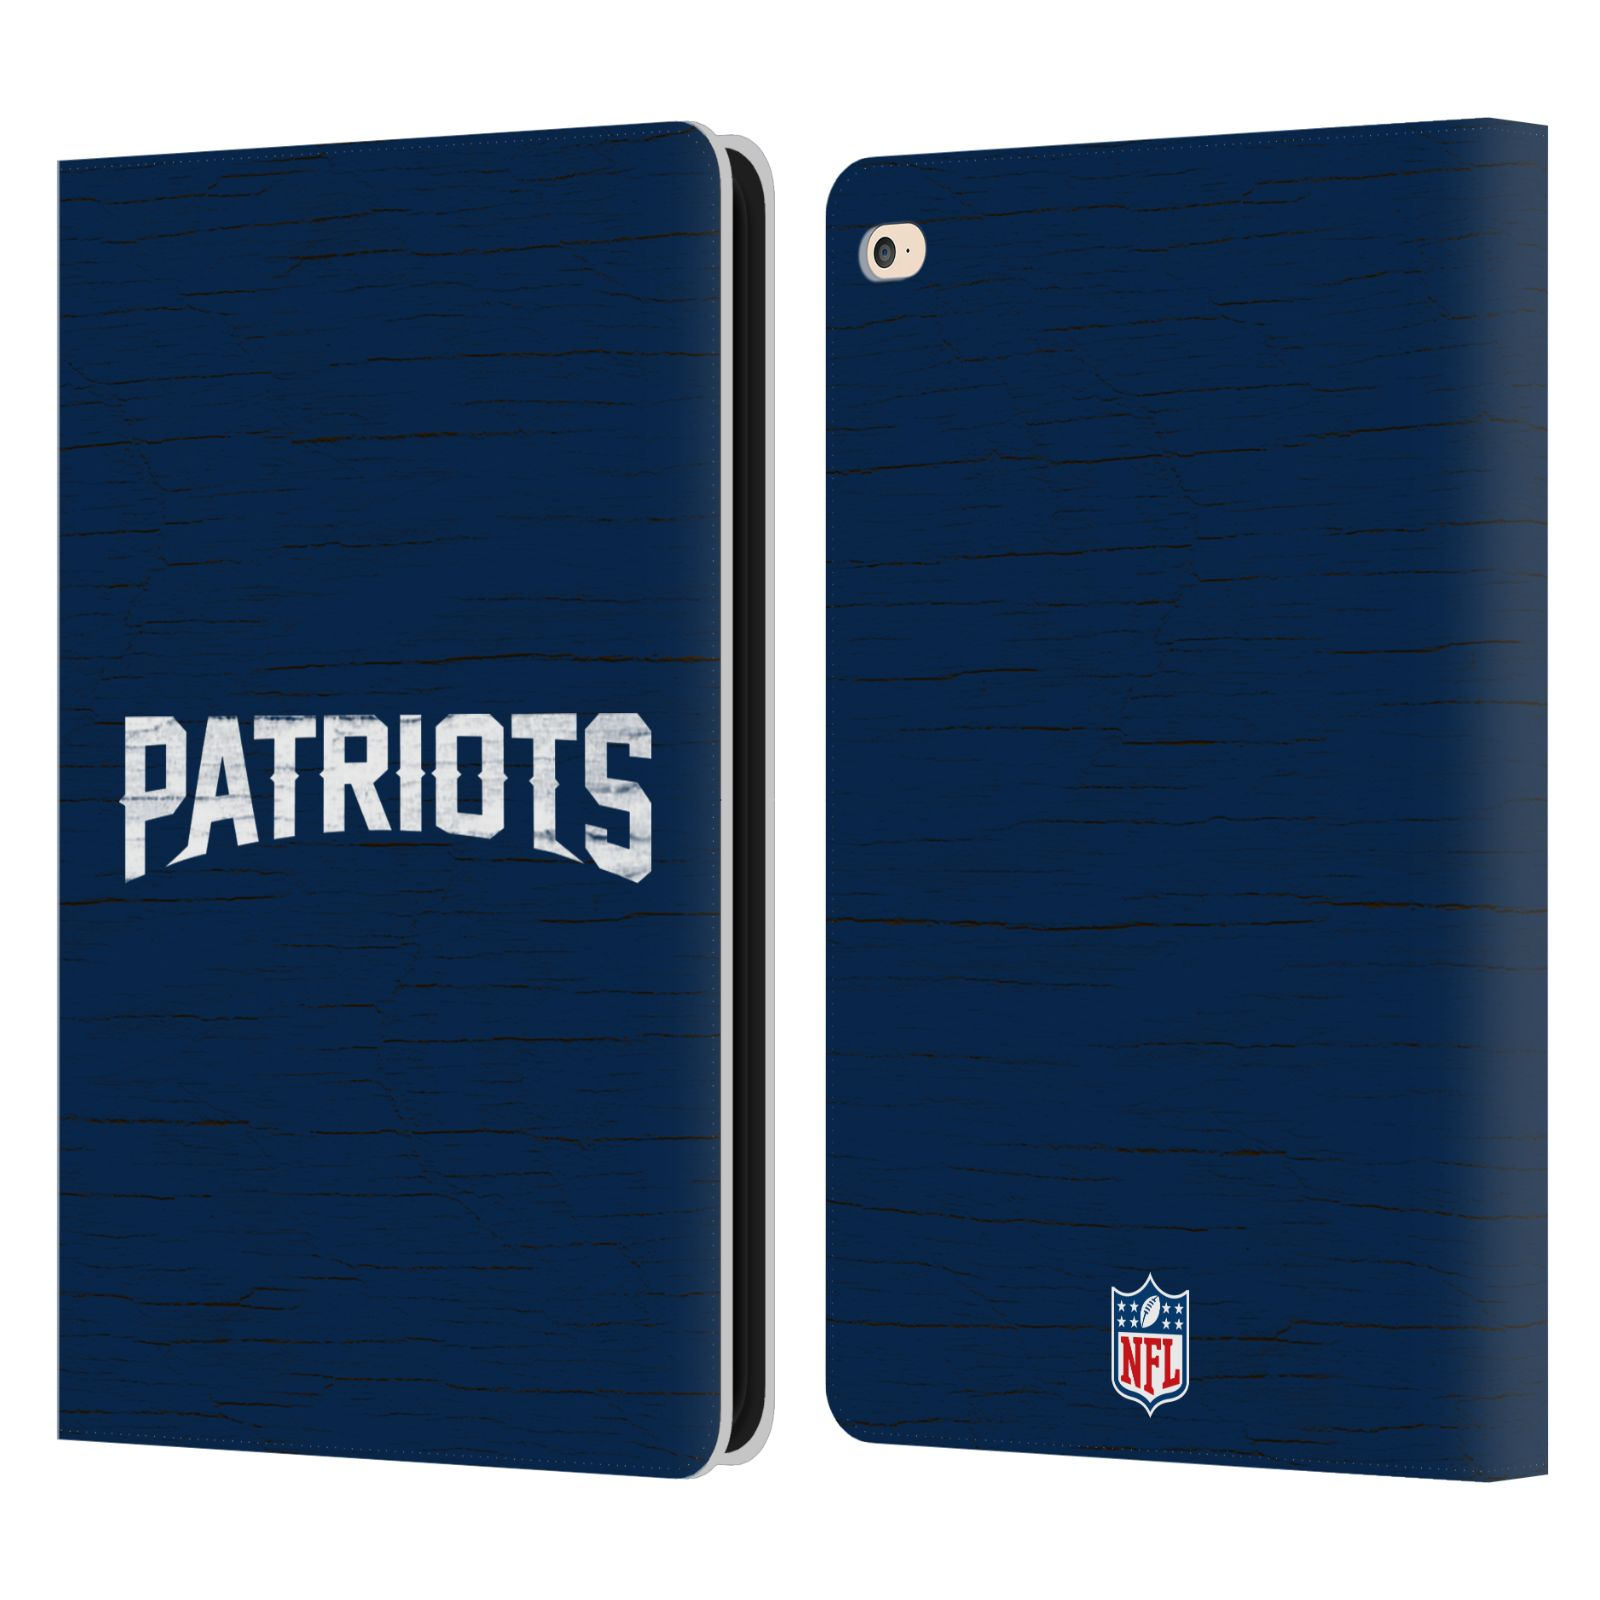 Official Nfl New England Patriots Logo Leather Book Wallet